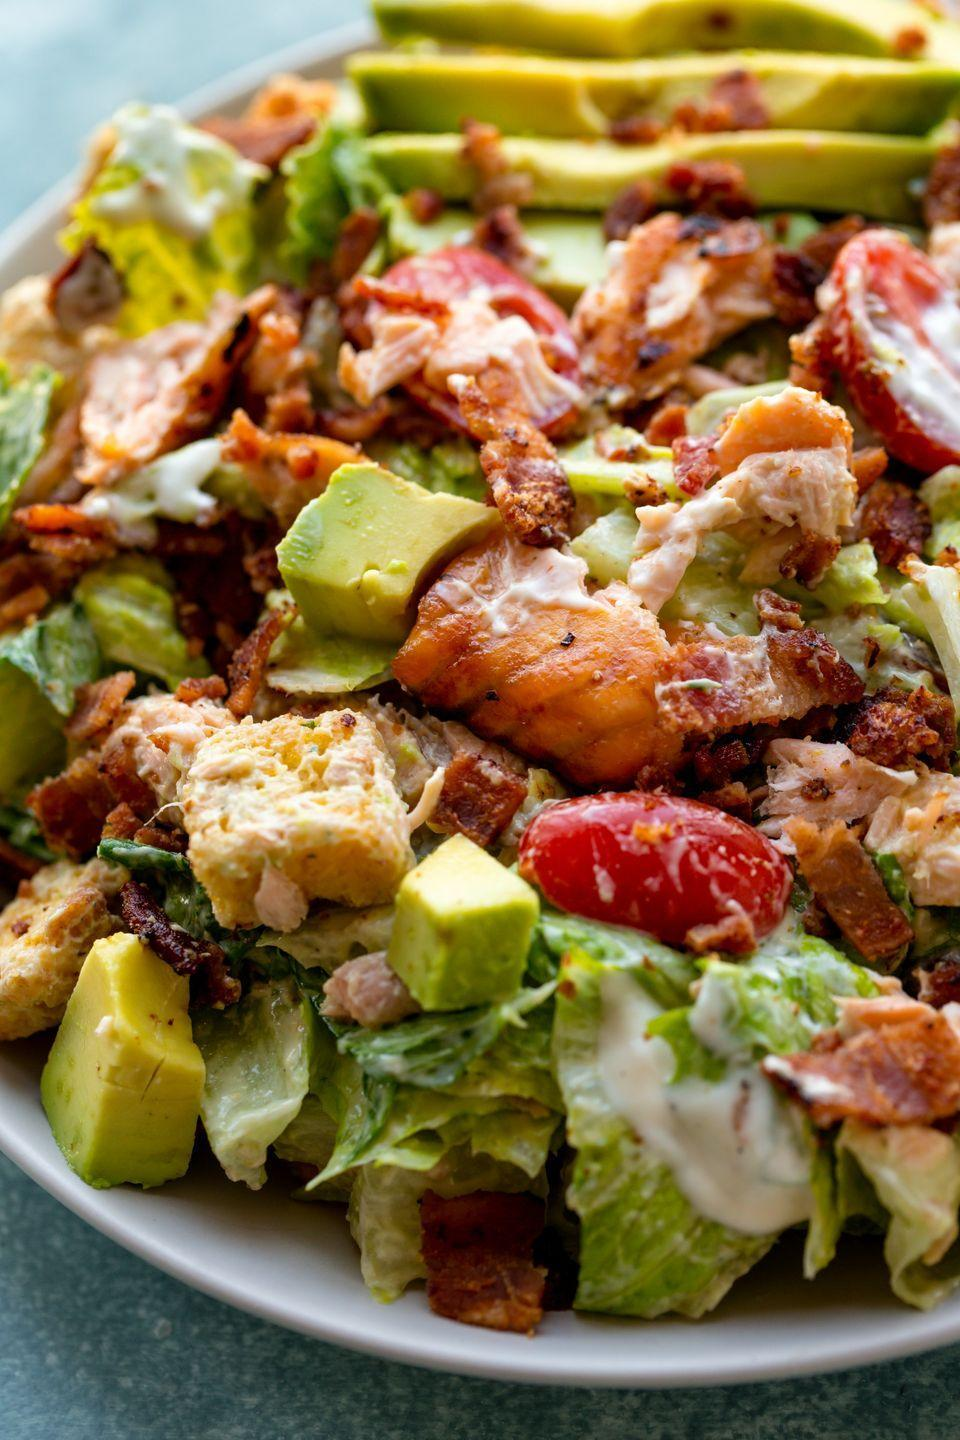 "<p>A salad so flavorful and satisfying you'll forget it all started with lettuce. The combination of salmon, bacon, and avocado is unbelievable and the homemade creamy dressing completes the whole dish!</p><p>Get the recipe from <a href=""https://www.delish.com/cooking/recipe-ideas/recipes/a52792/blt-salmon-salad-recipe/"" rel=""nofollow noopener"" target=""_blank"" data-ylk=""slk:Delish"" class=""link rapid-noclick-resp"">Delish</a>.</p>"